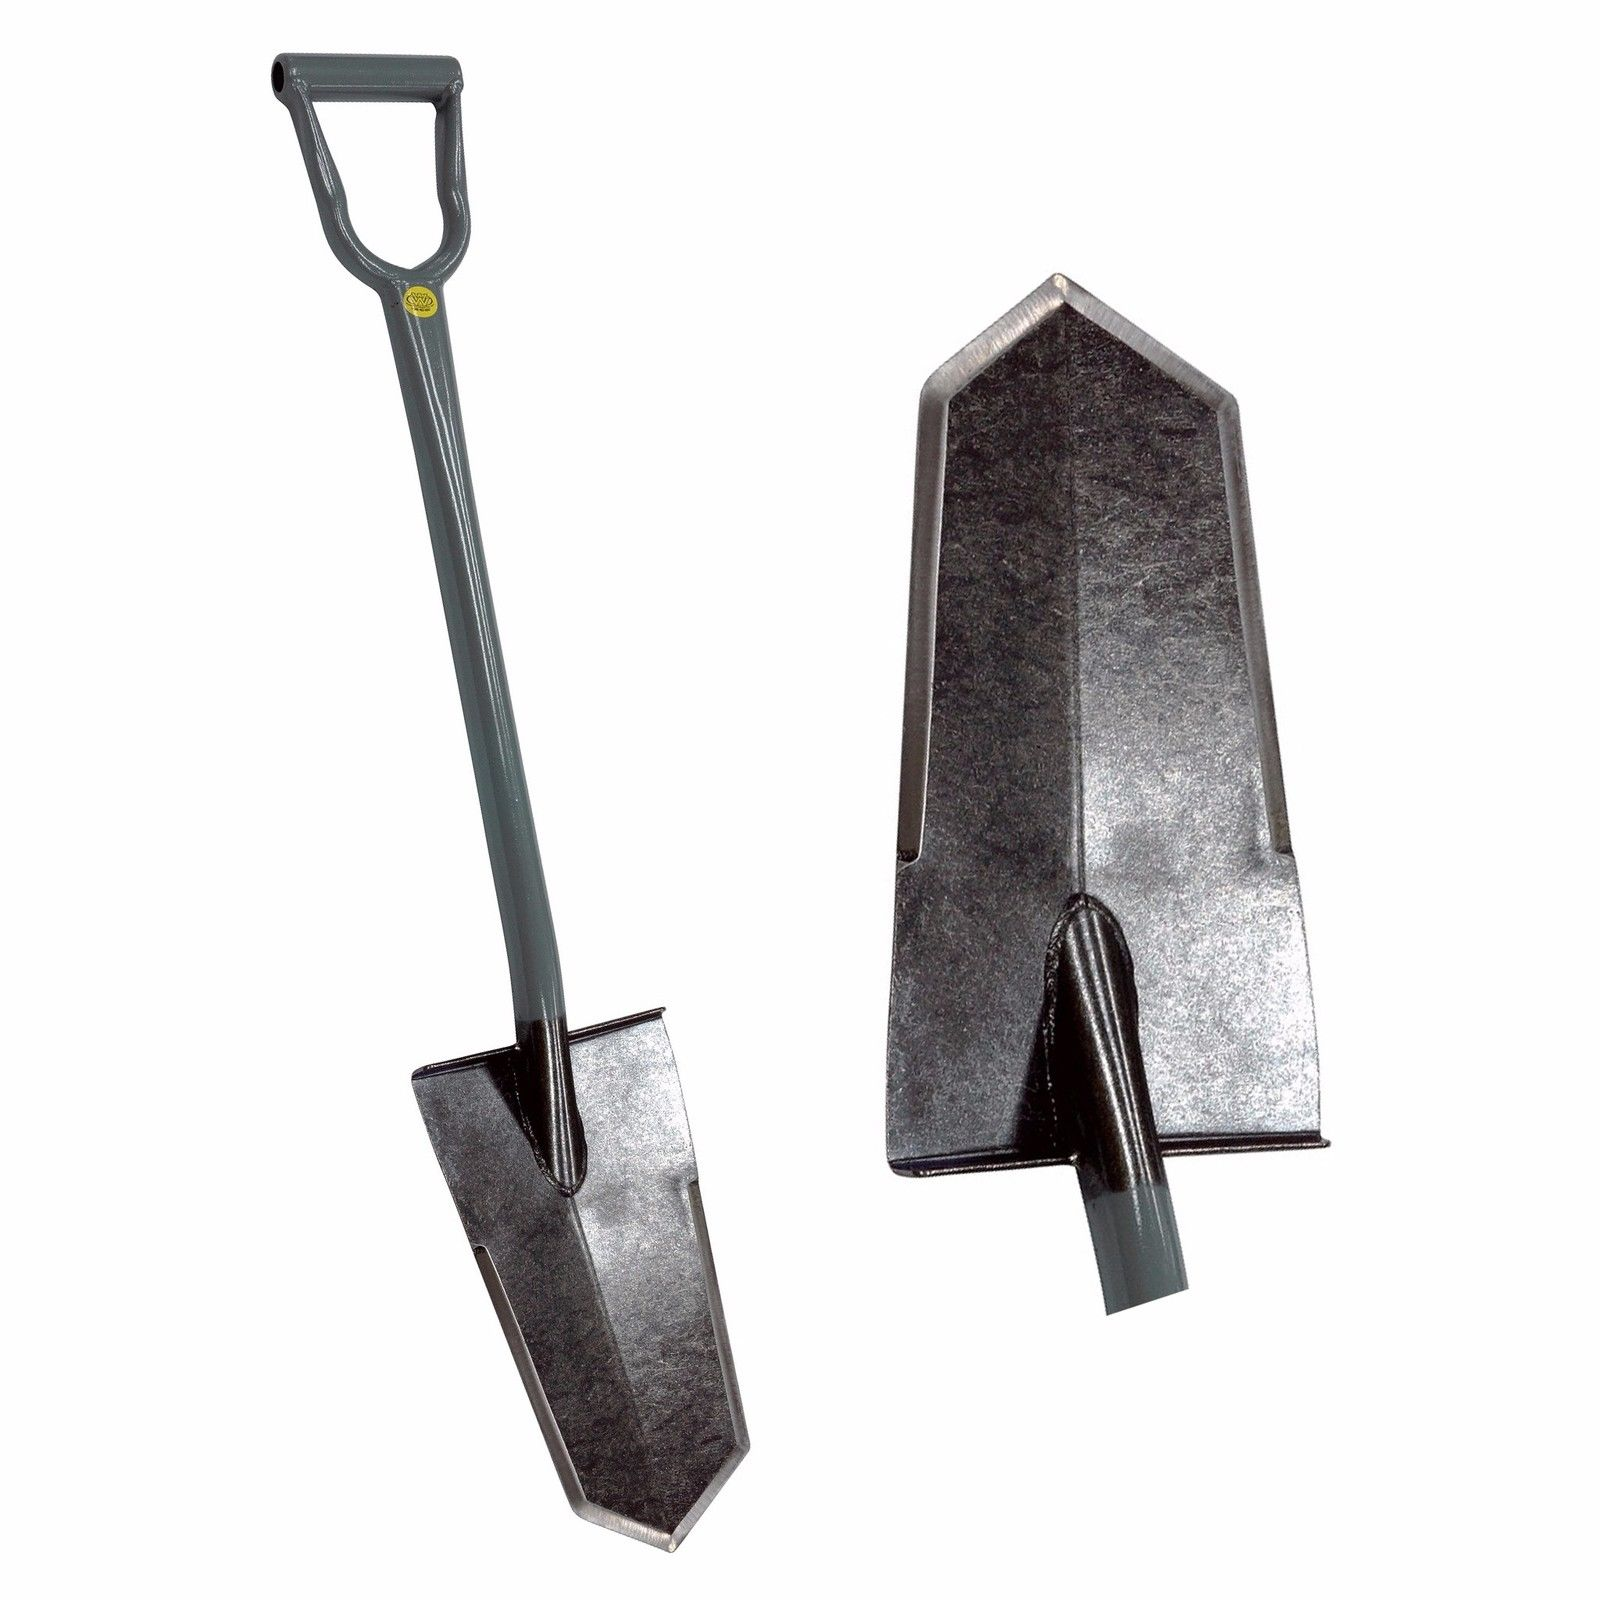 King of Spades Super Sampson Grey D-Handle Shovel with Heat Treated Blade